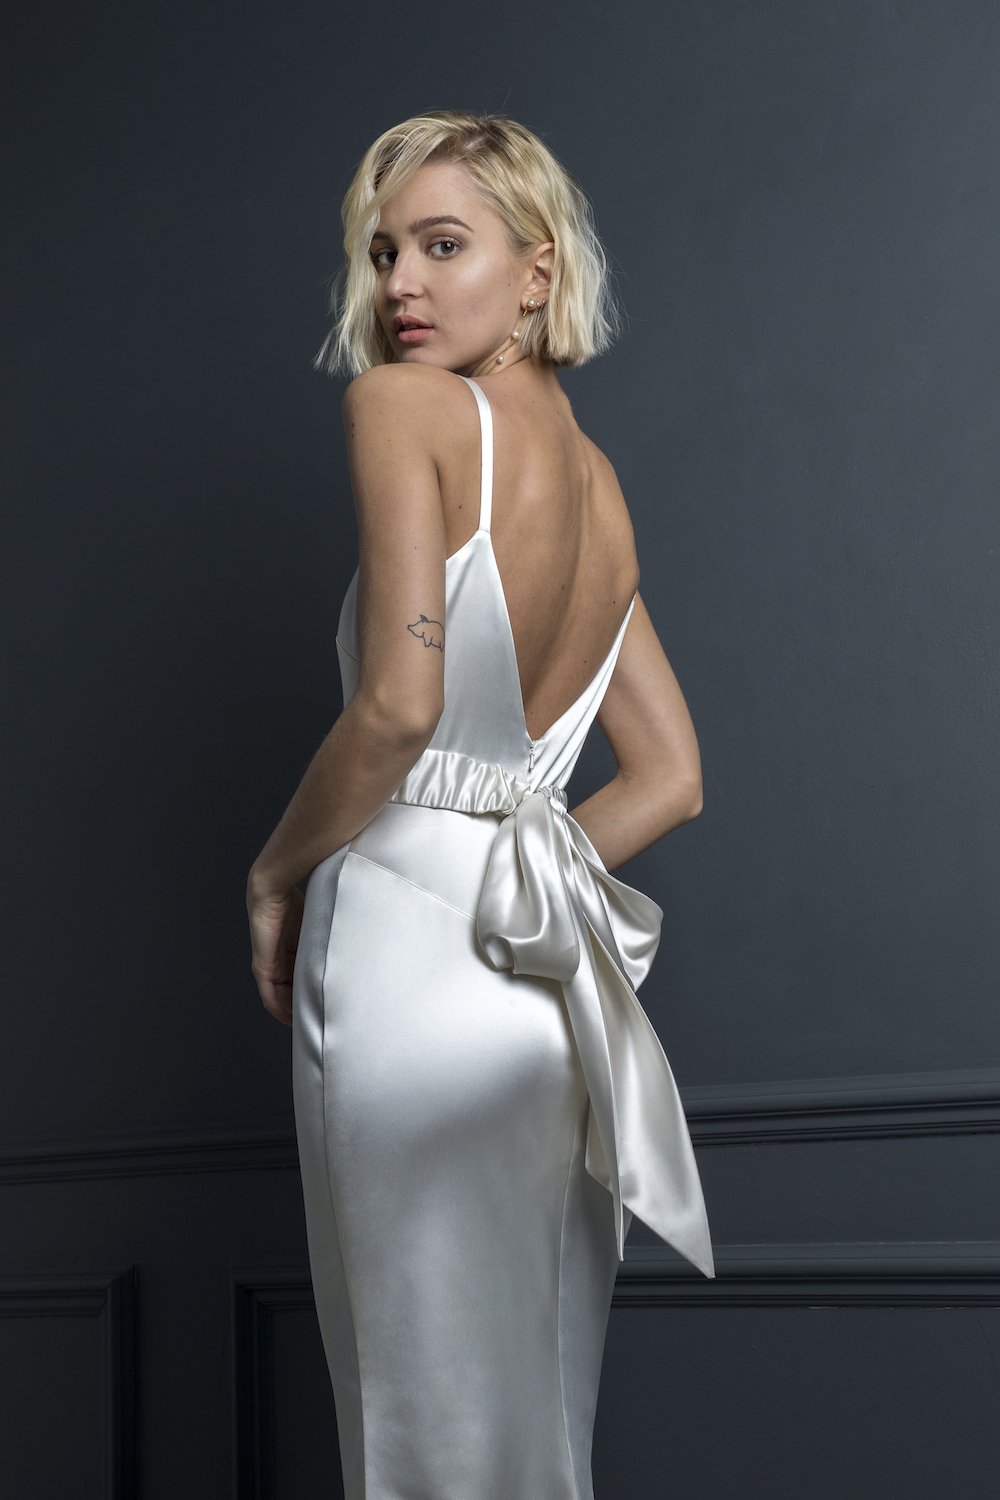 VICTOR SLIP & BUMBLE BELT | WEDDING DRESS BY HALFPENNY LONDON